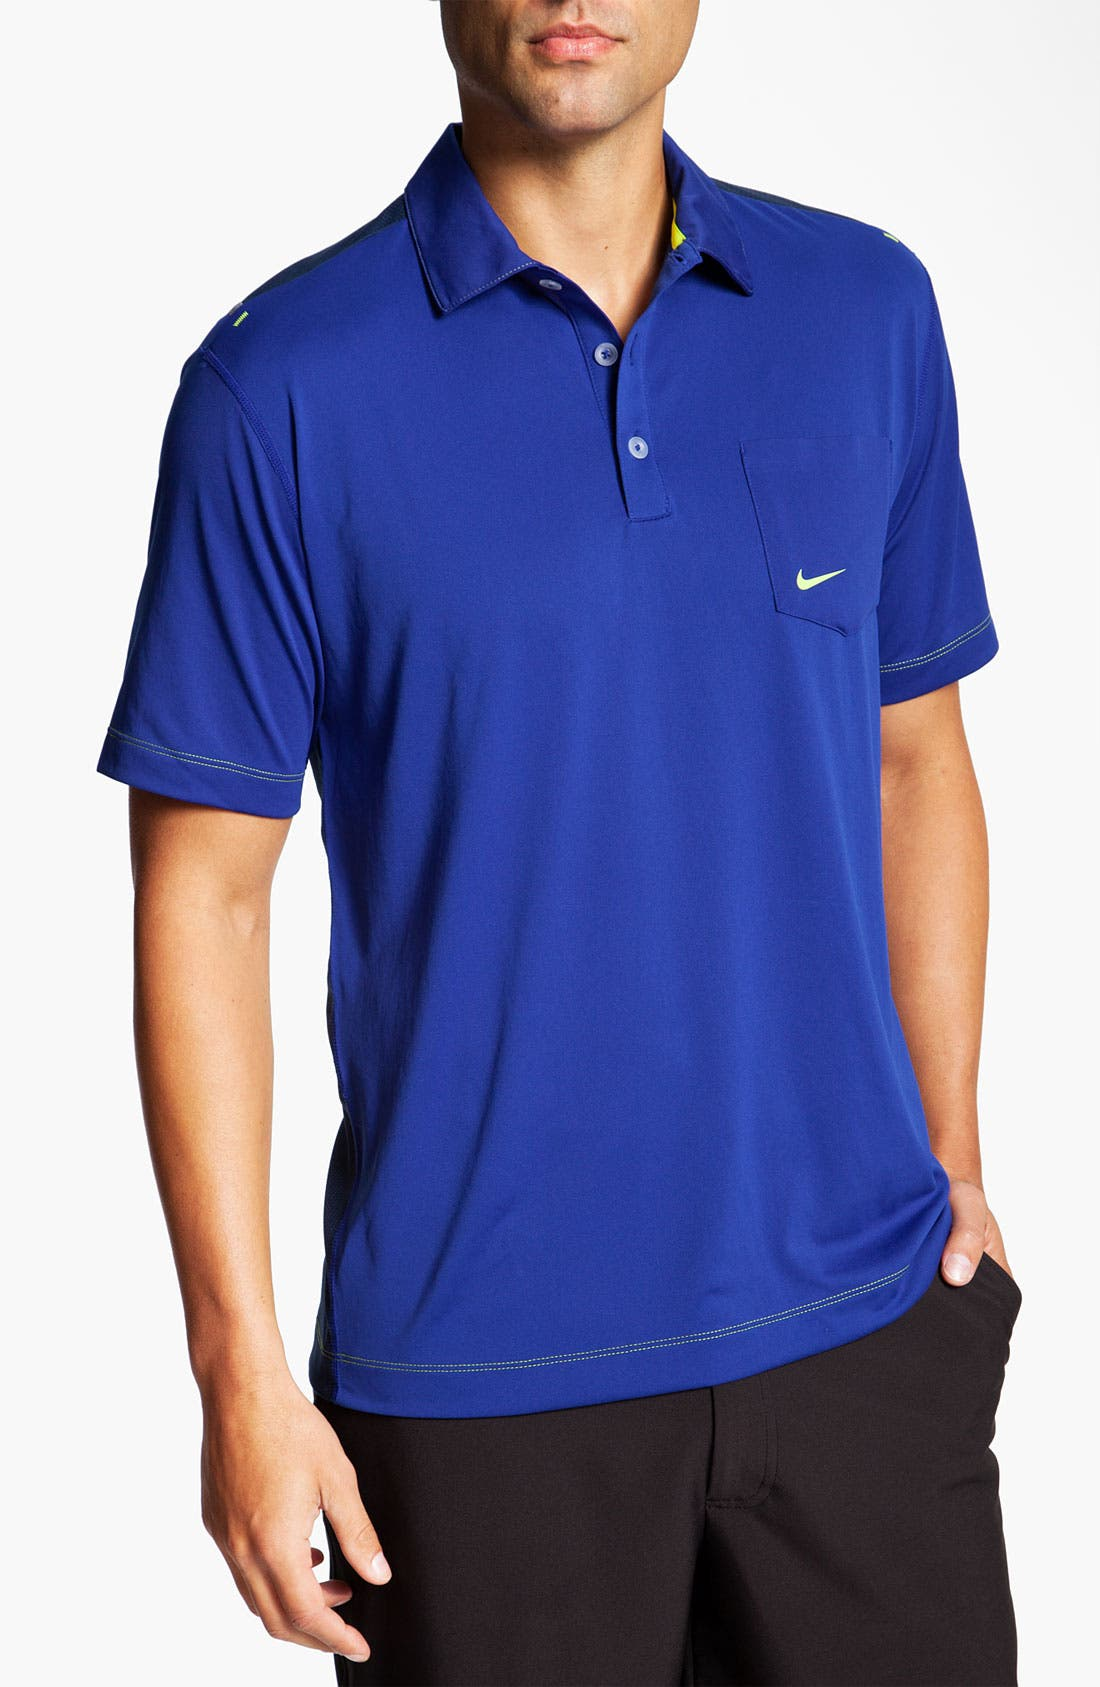 Alternate Image 1 Selected - Nike Golf 'Body Mapping' Dri-FIT Polo